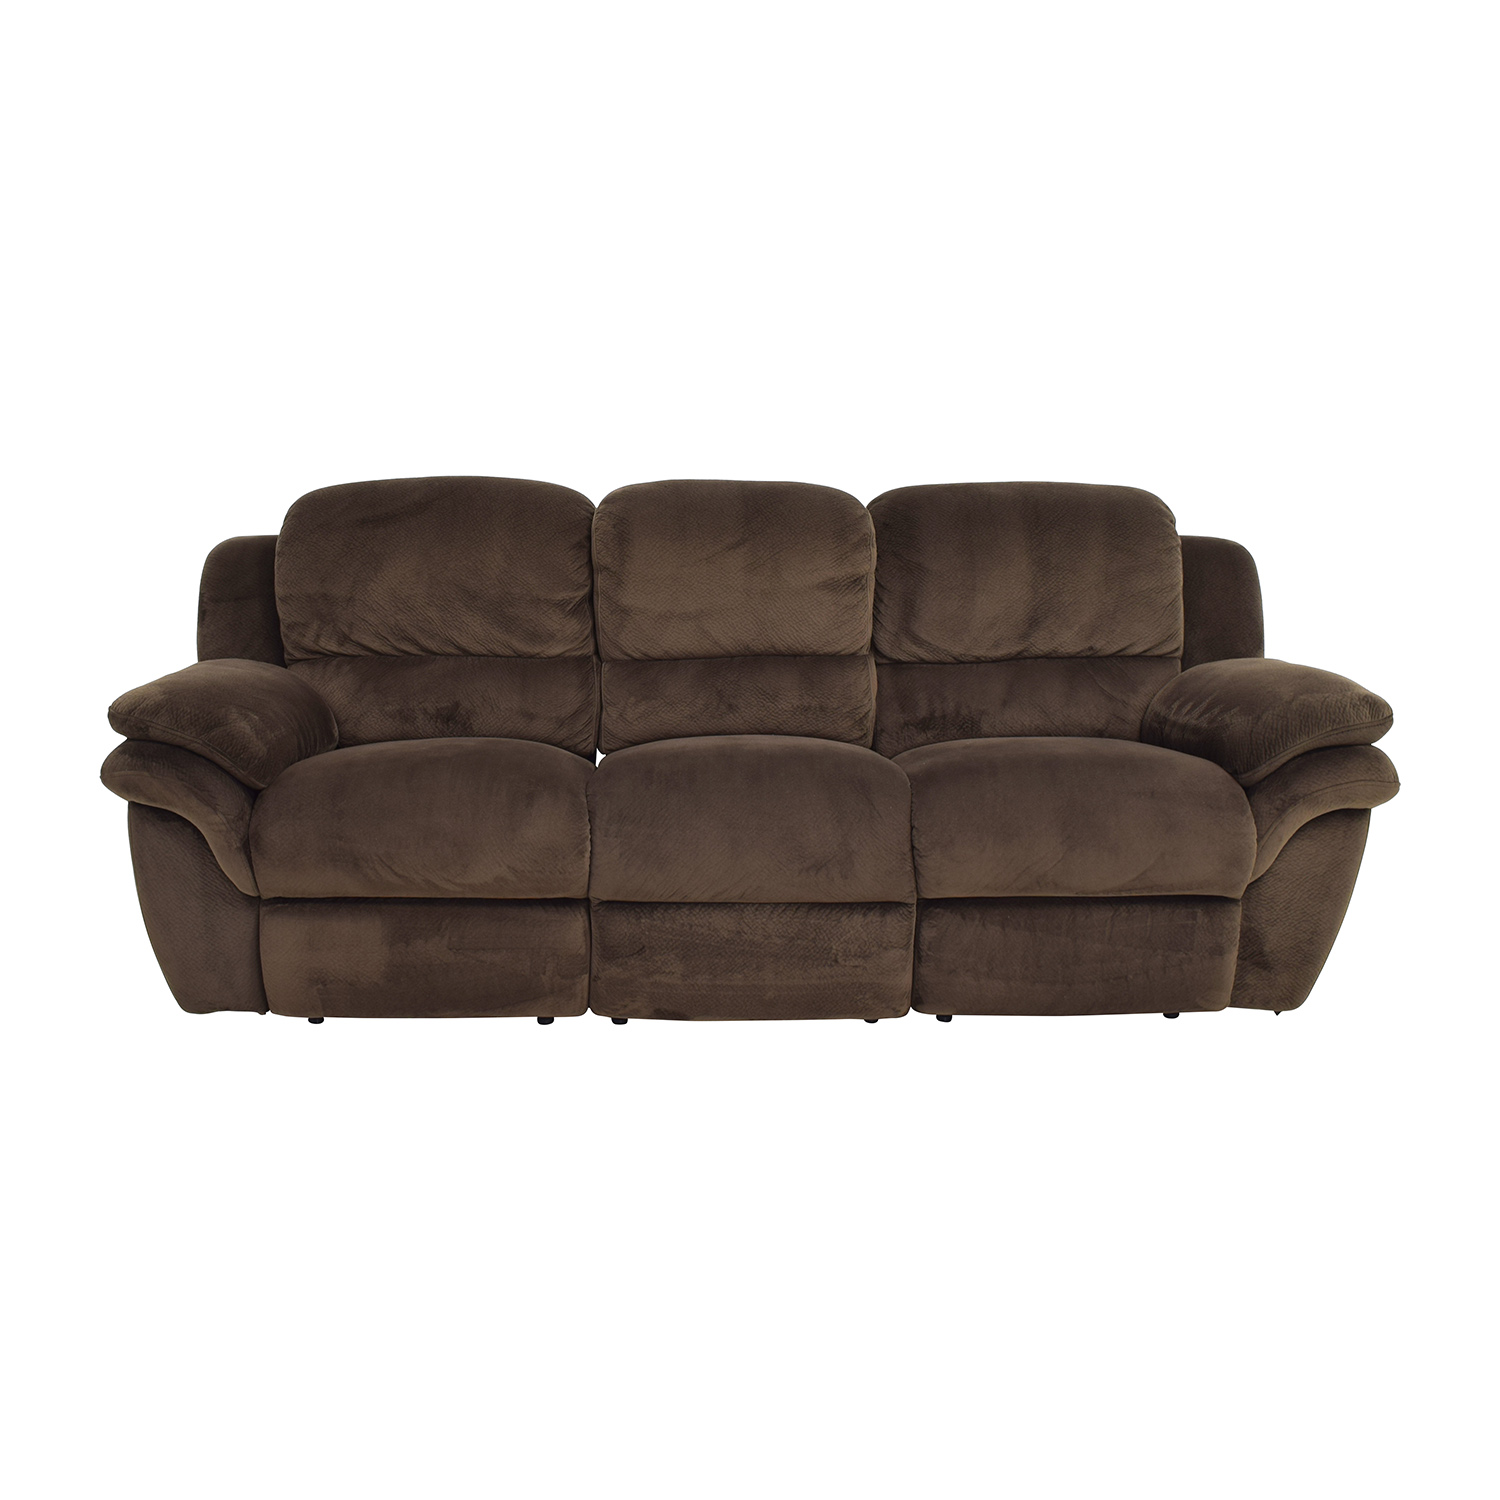 Bobs Furniture Bobs Furniture Brown Reclining Couch second hand